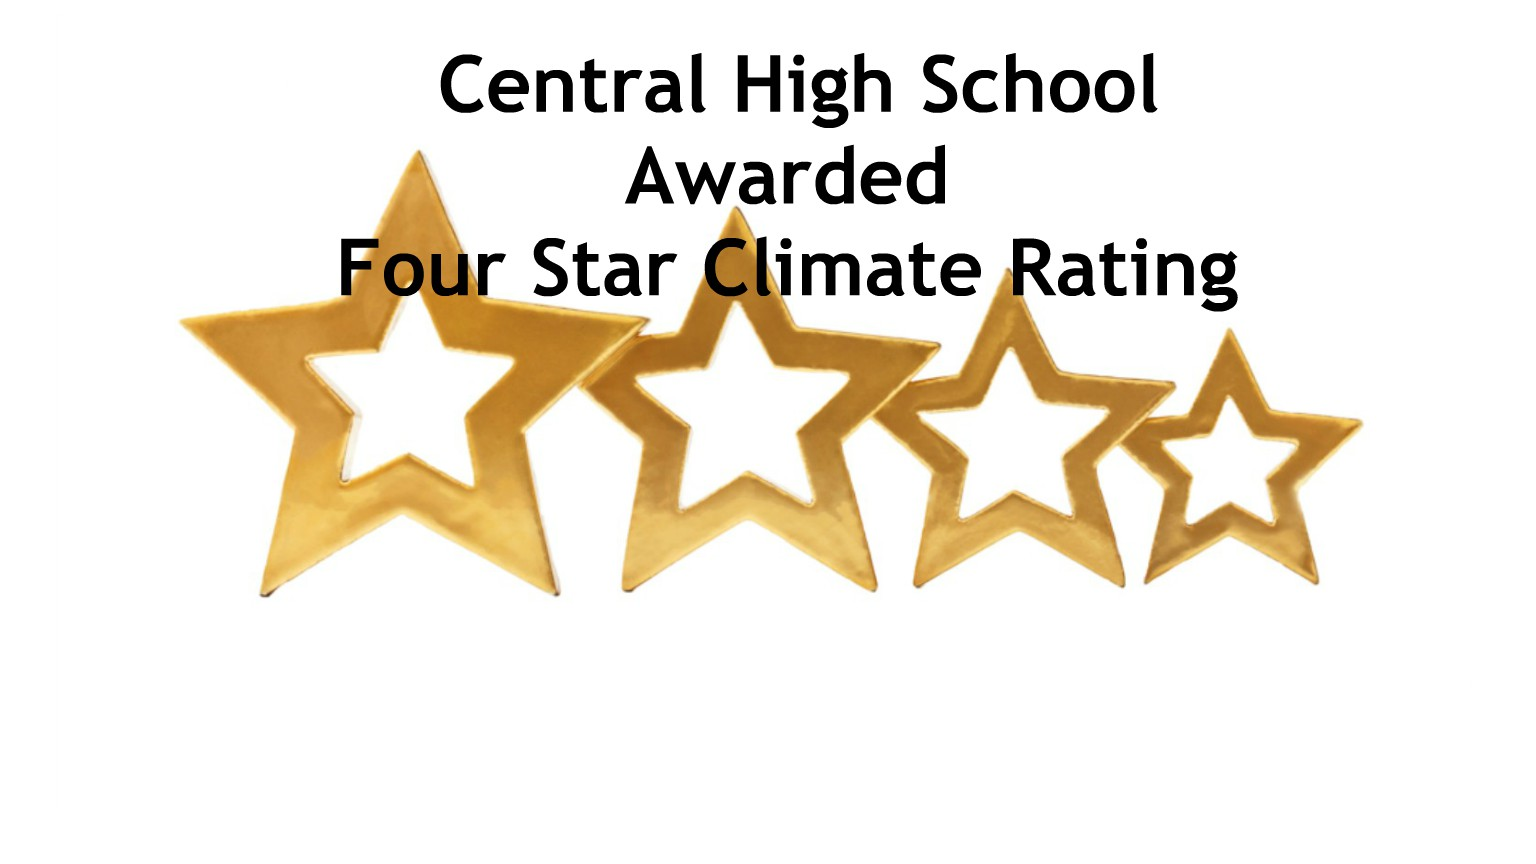 4-Star Climate Rating